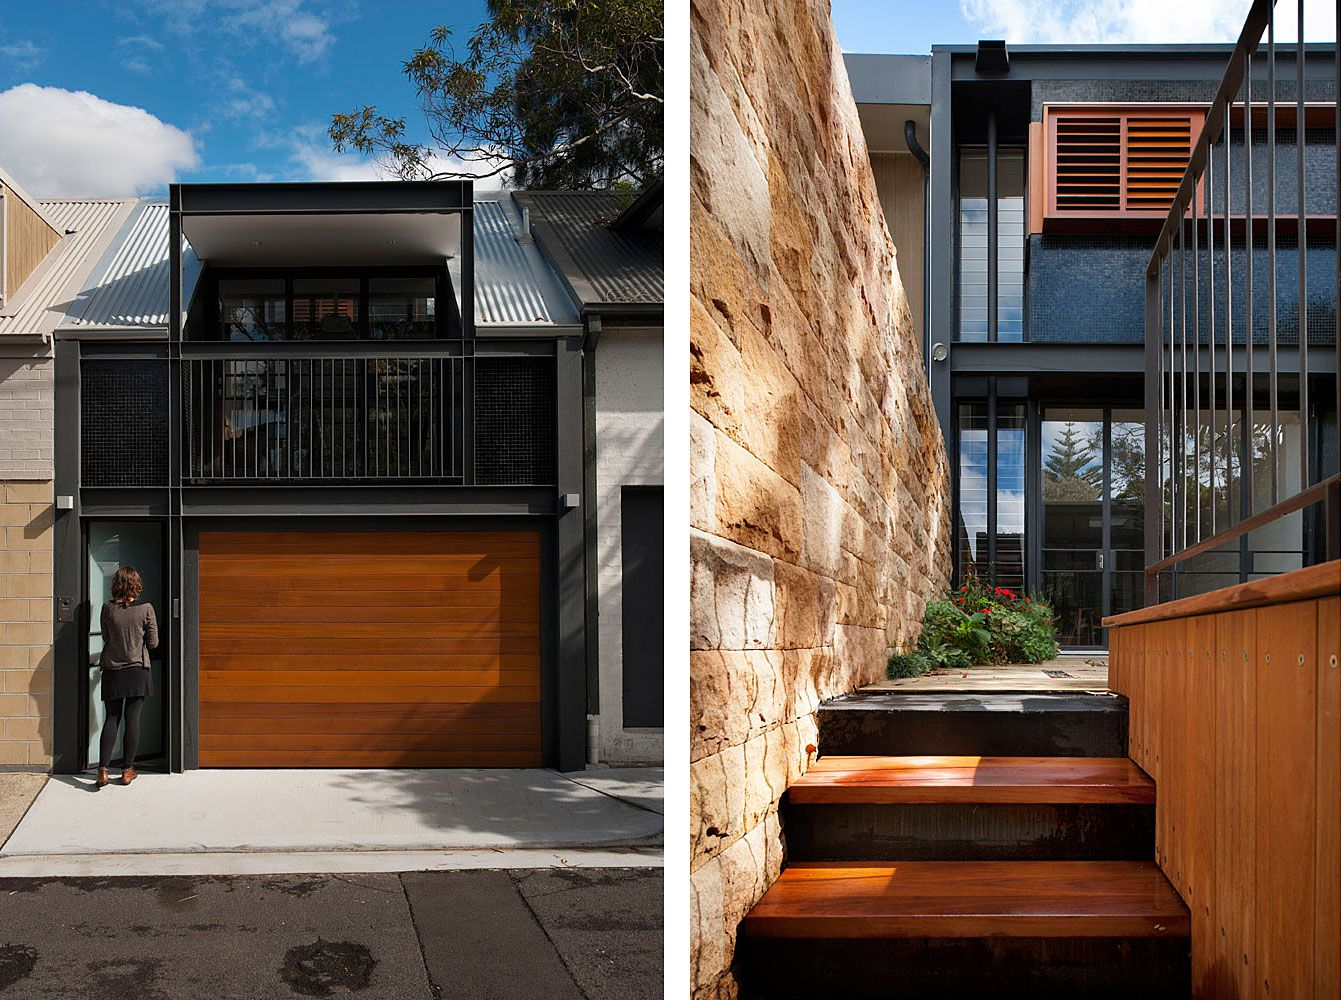 Rozelle terrace house by carter williamson architects for The terrace land and house